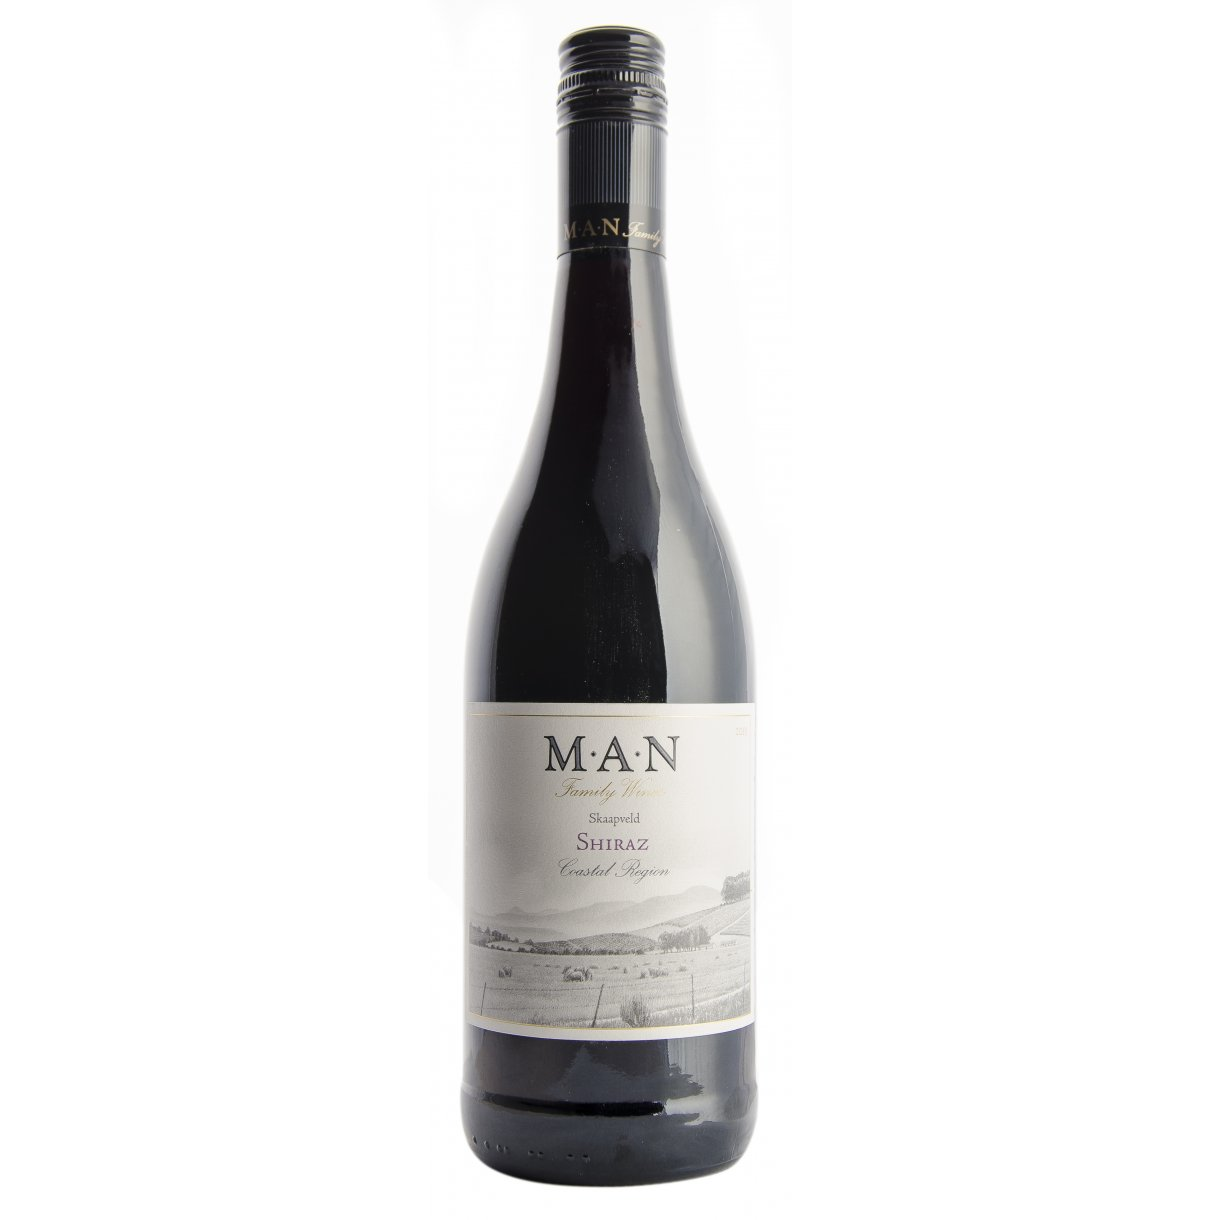 MAN Shiraz, 2015 - 'Skaapveld' Coastal Region